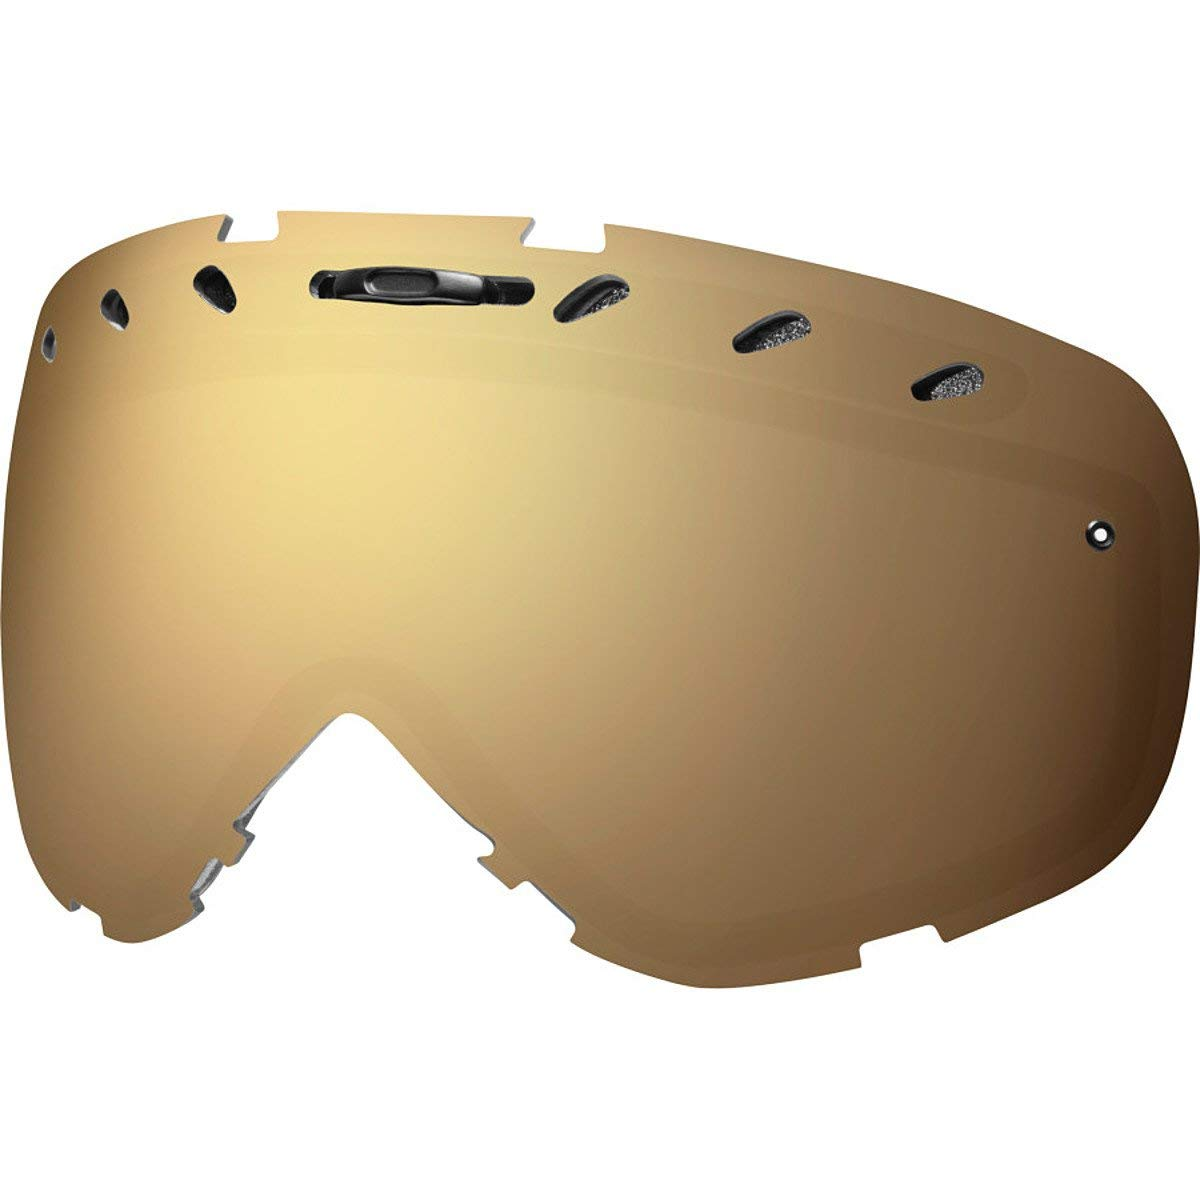 56f6ddb02dd8 Get Quotations · Smith Optics 2014 Phenom Goggle Replacement Lens - Standard